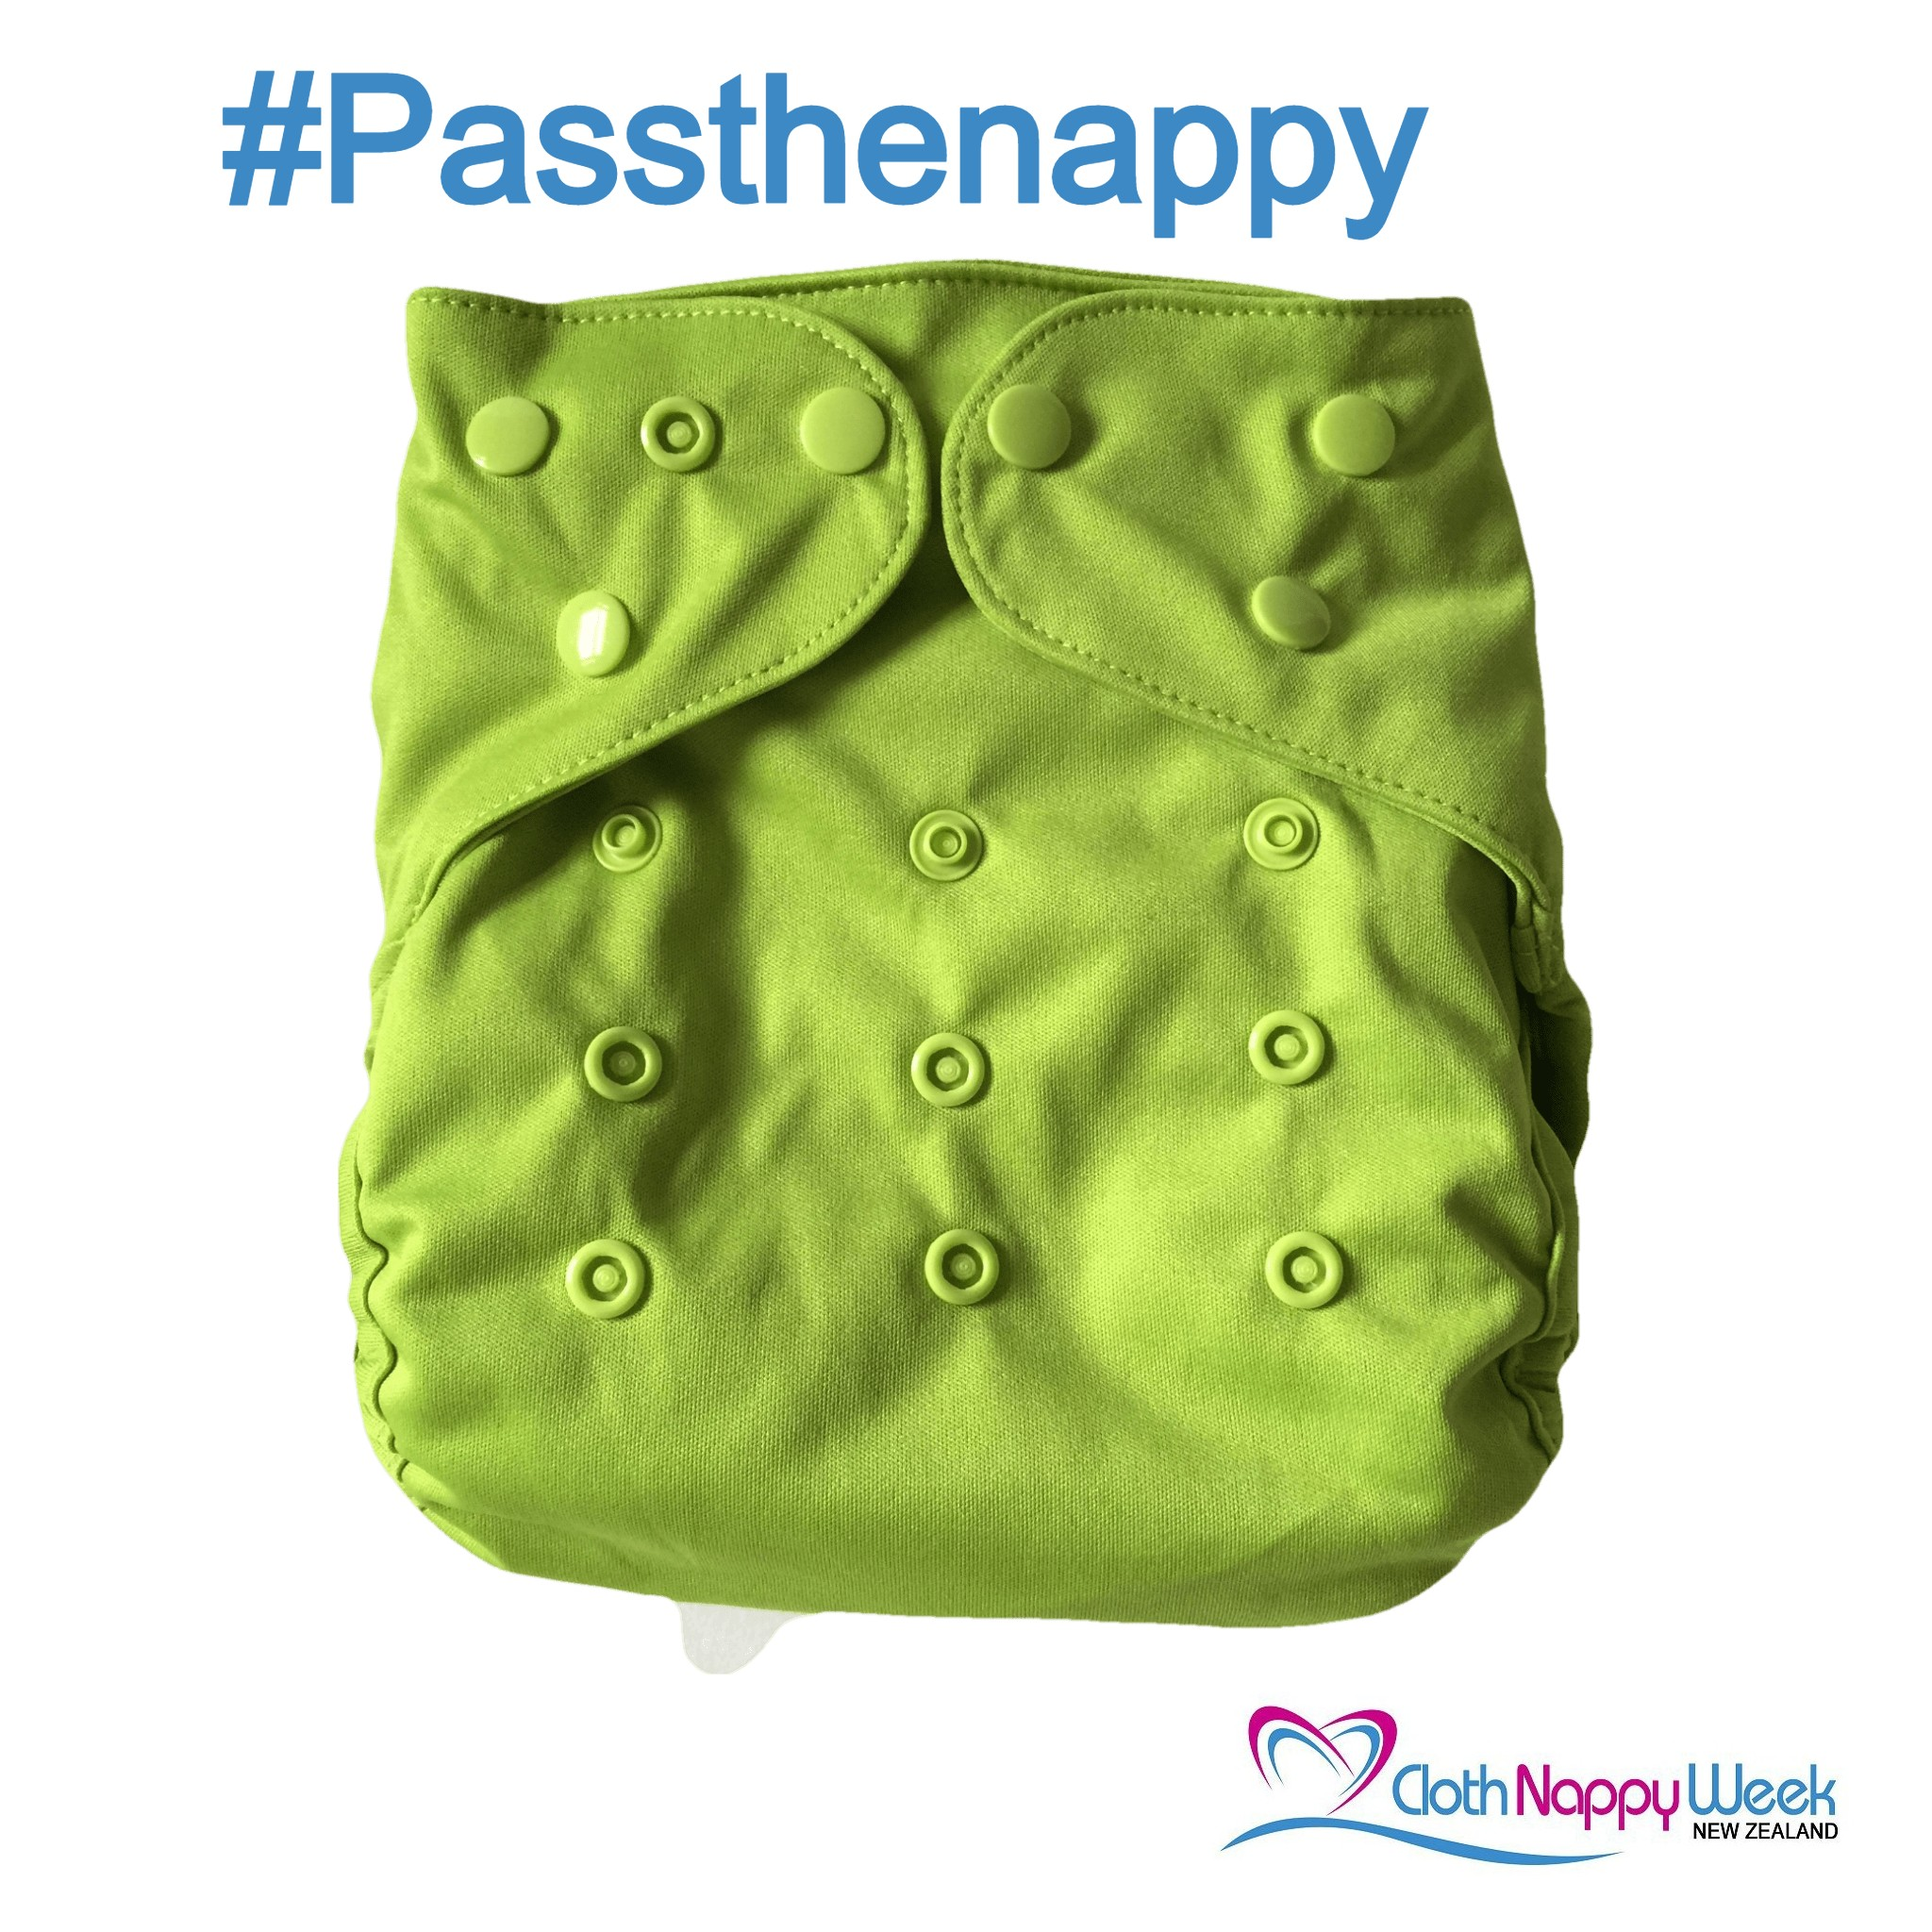 Pass the nappy cloth nappy week fun